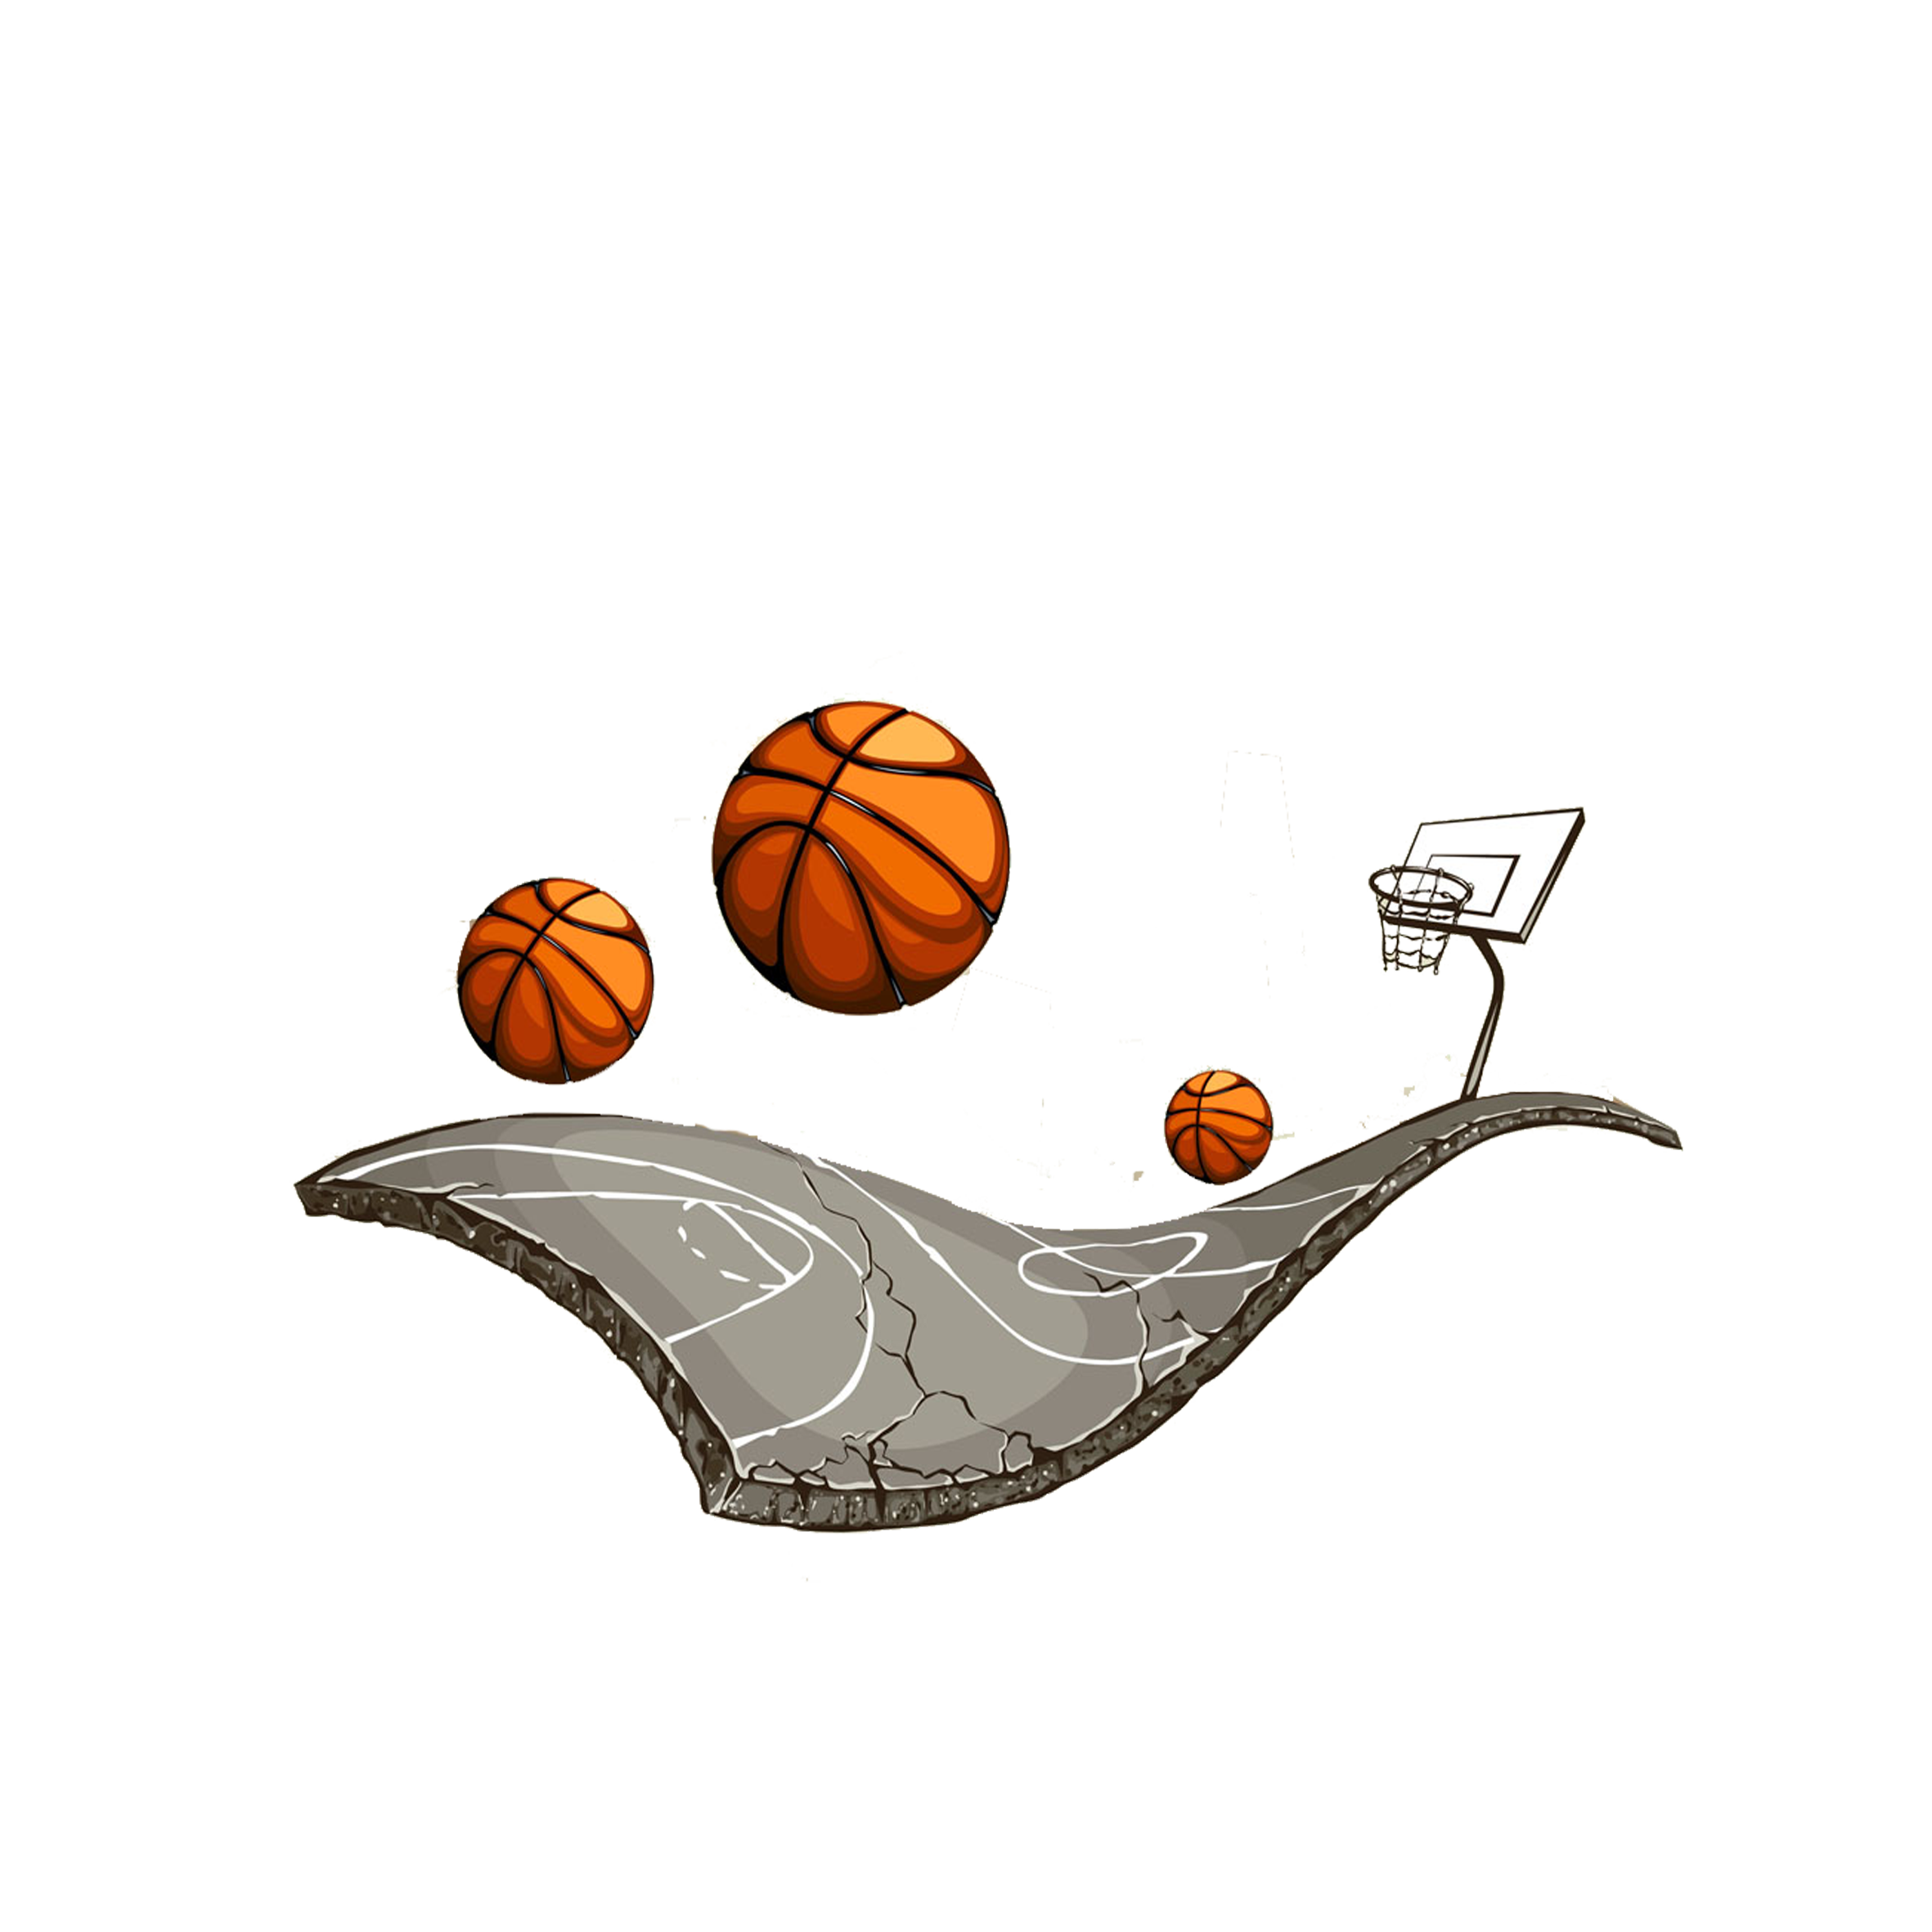 Cool clipart of basketball court download Basketball court Streetball Clip art - Basketball court and ... download